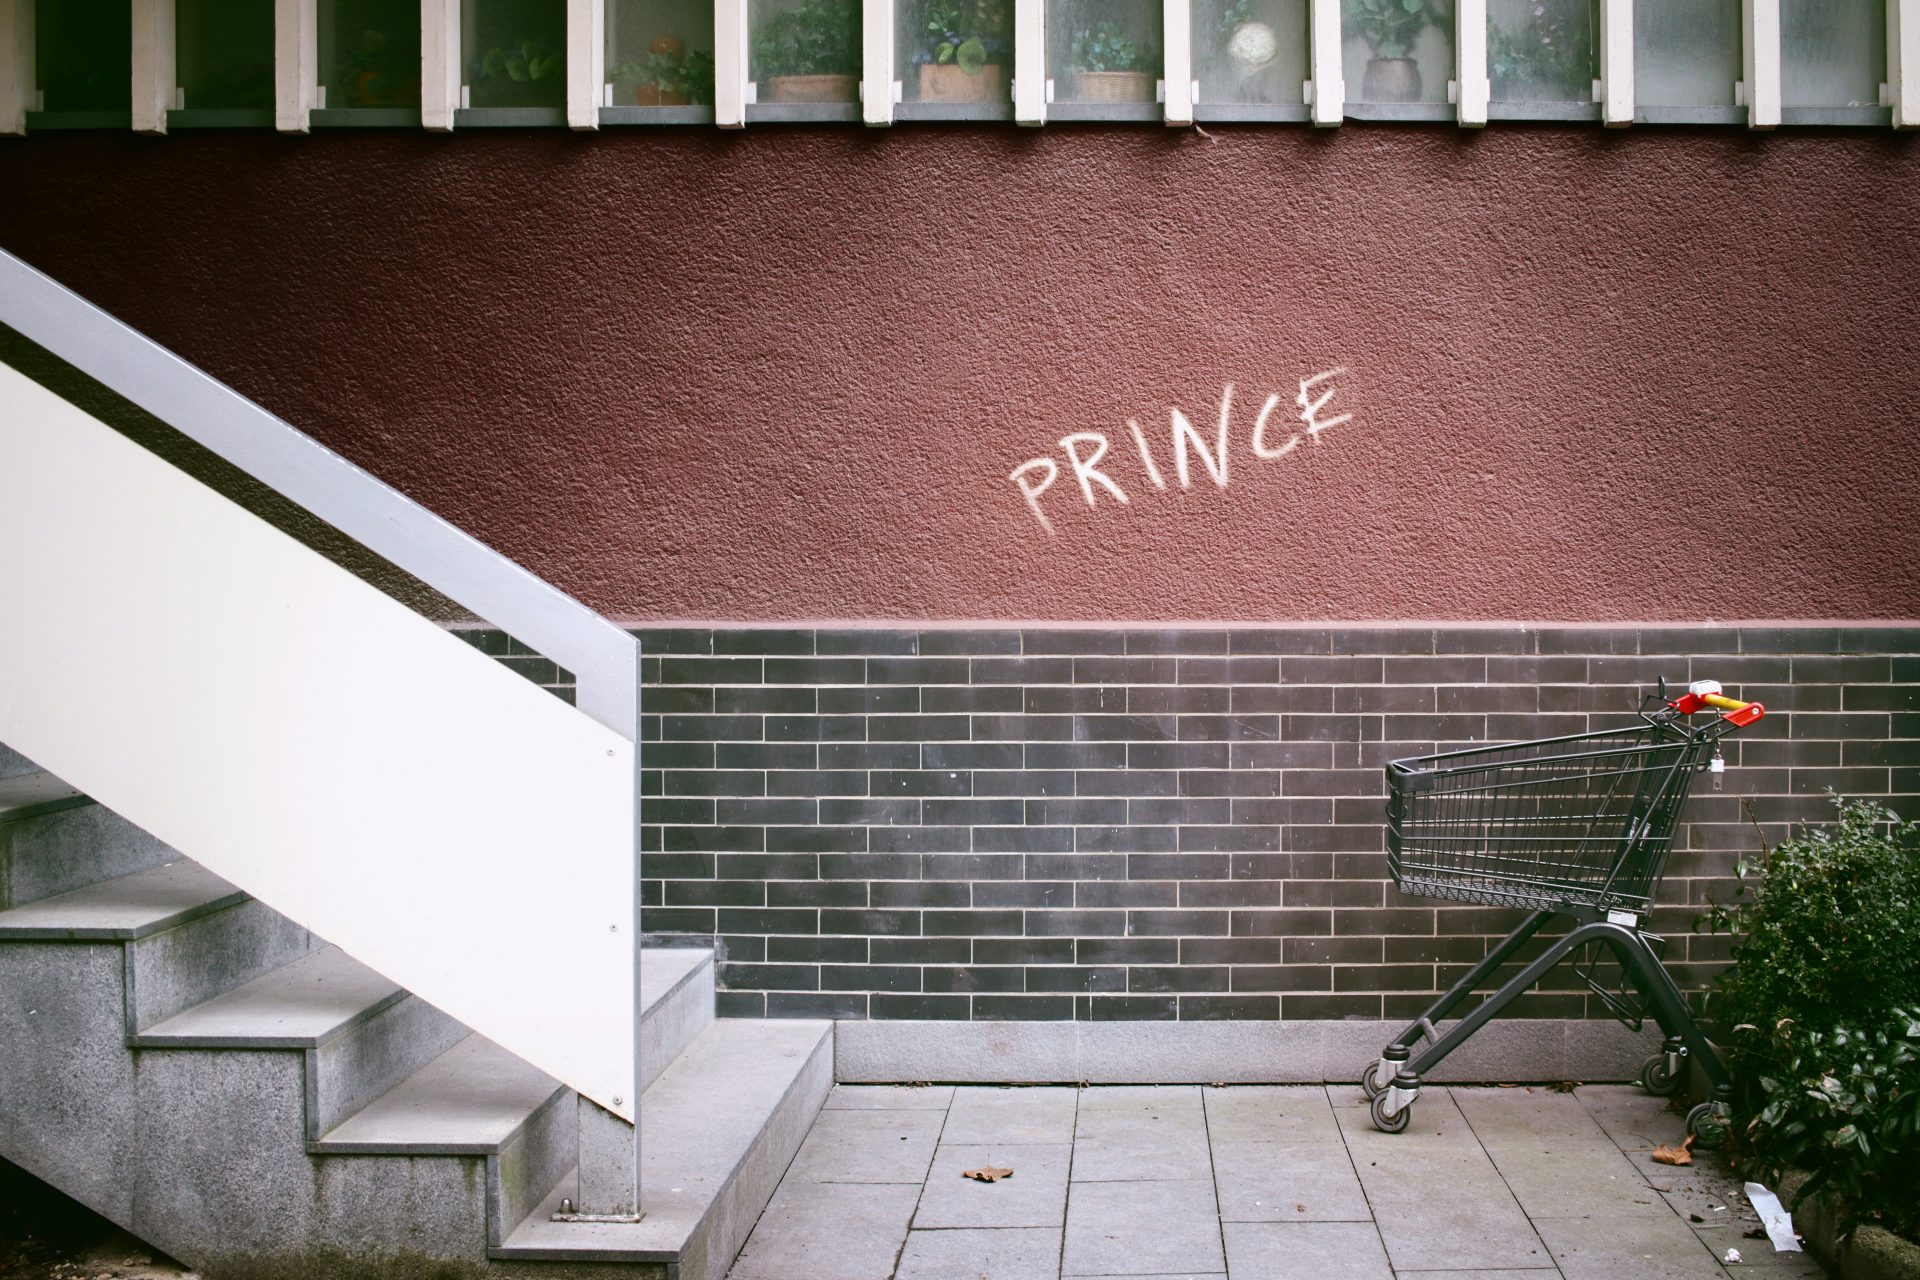 prince was here